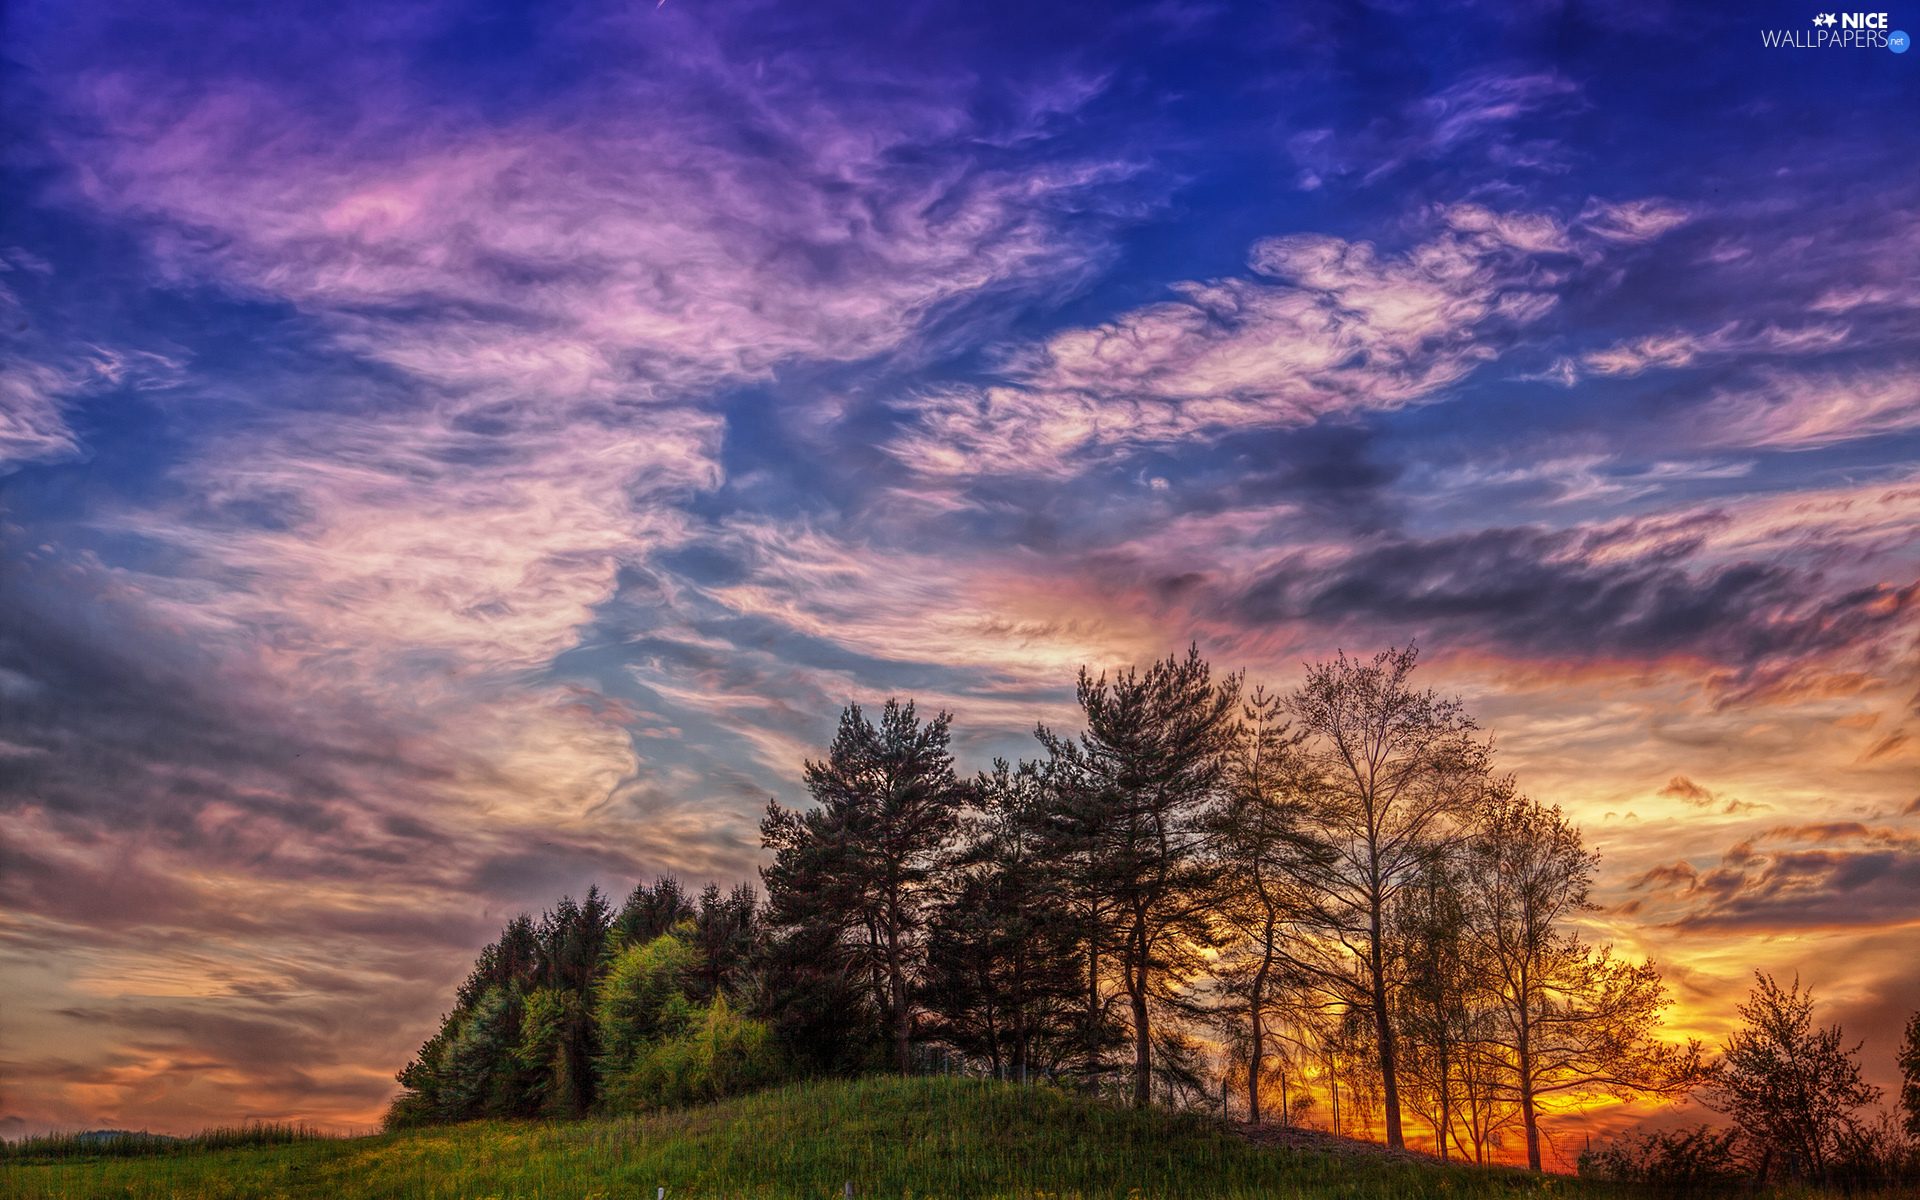 clouds, Great Sunsets, trees, viewes, Hill